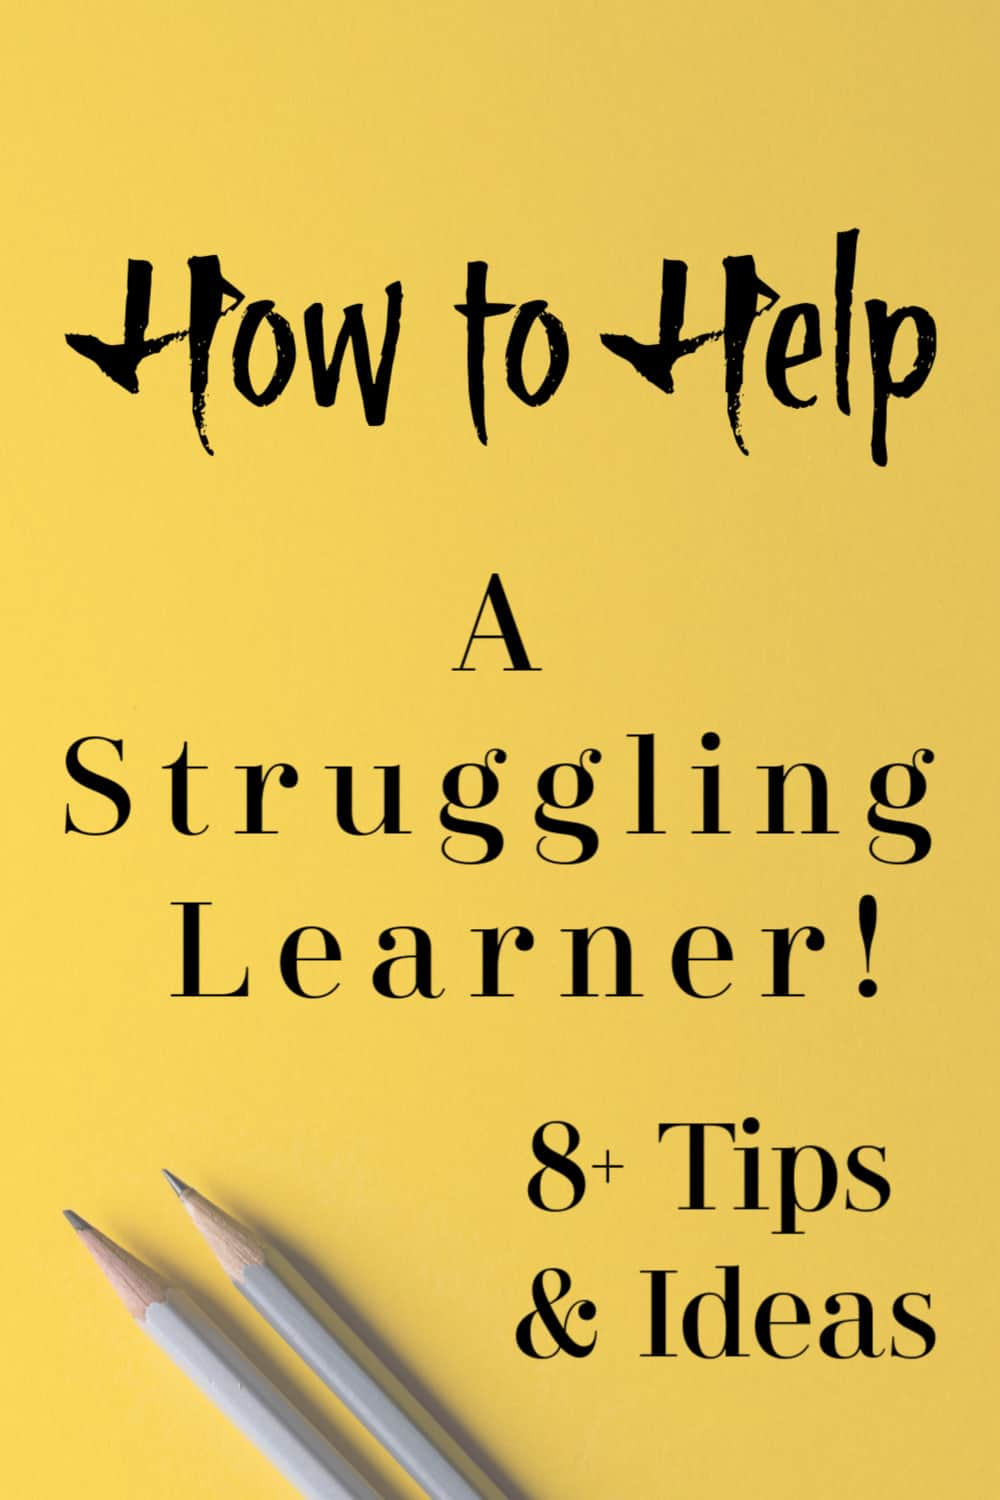 How to help a struggling learner - Tips and ideas to help a struggling learner to thrive. Includes simple tips for parents to help children with education struggles.